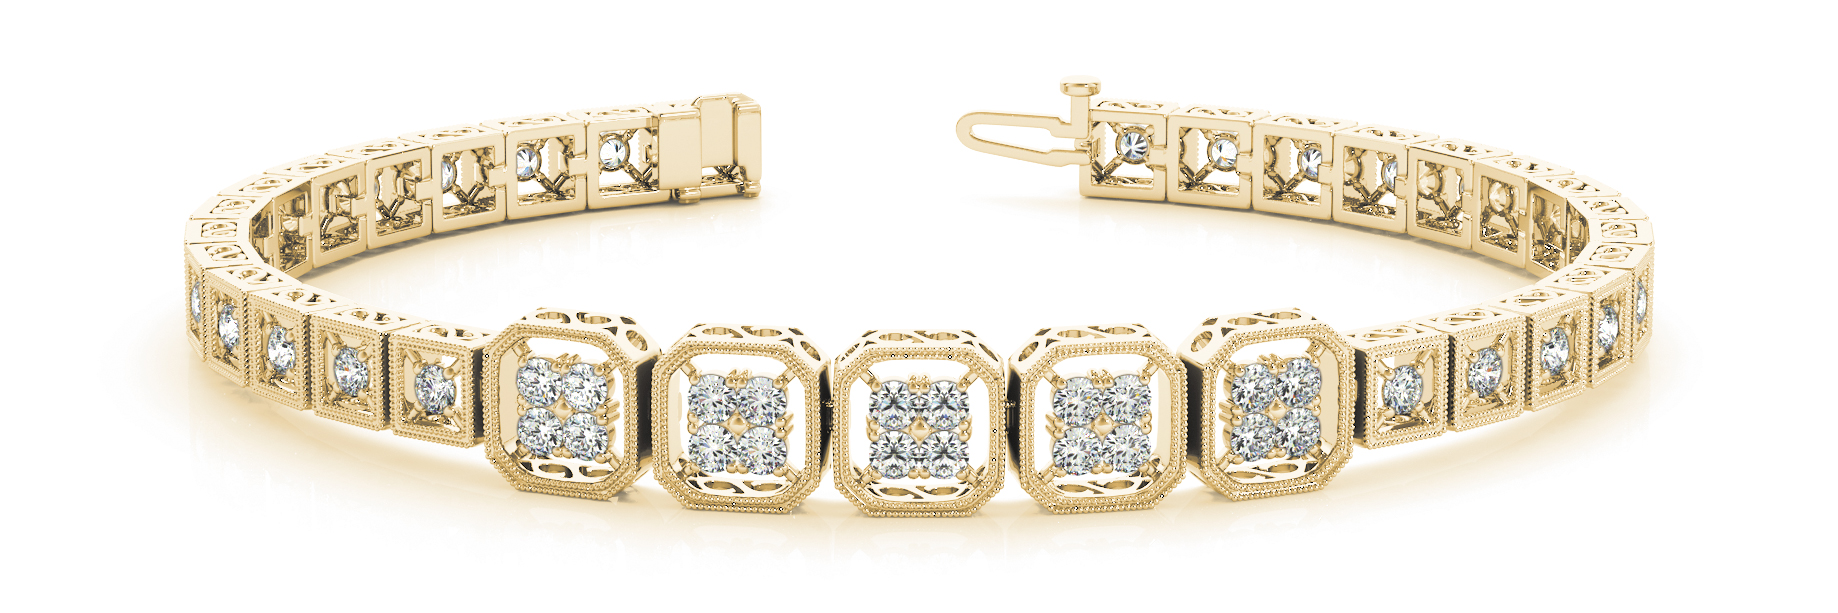 Quad Octagon Round Diamond Filigree Bracelet Yellow Gold 1.4 ct.